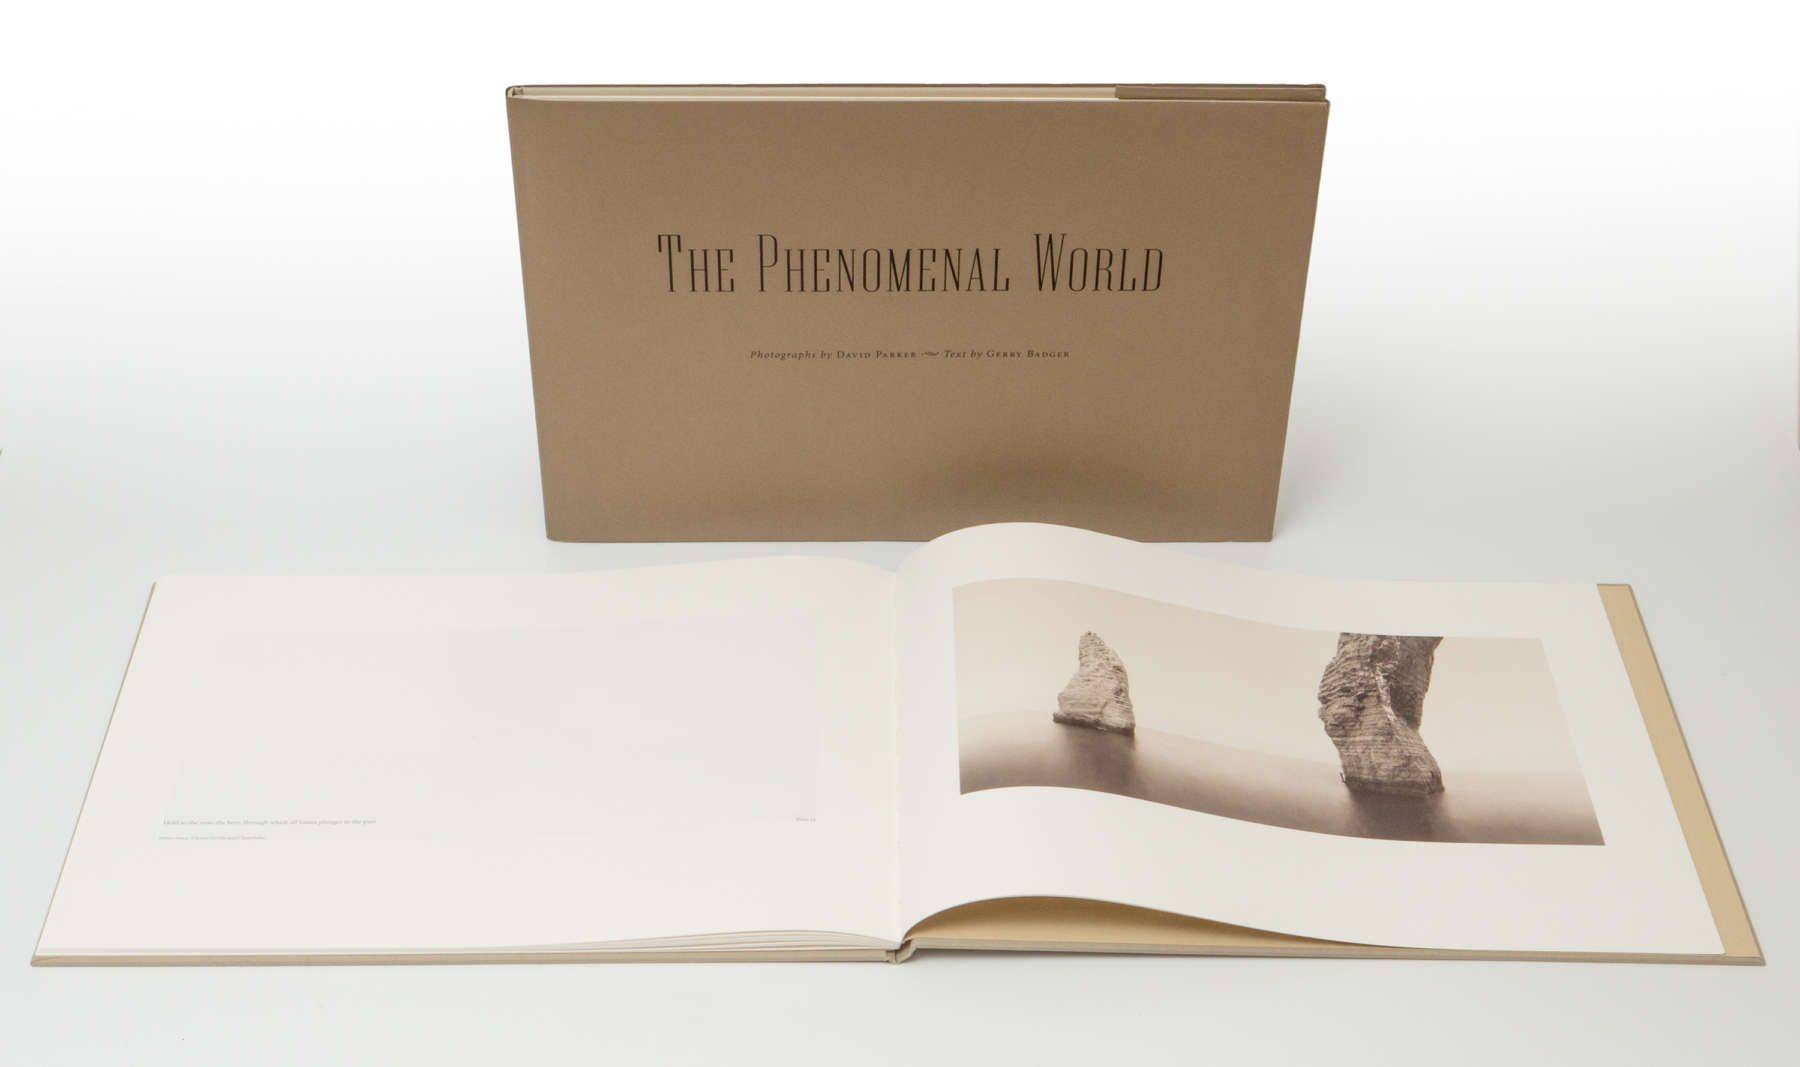 Double page spread and cover of The Phenomenal World by David Parker